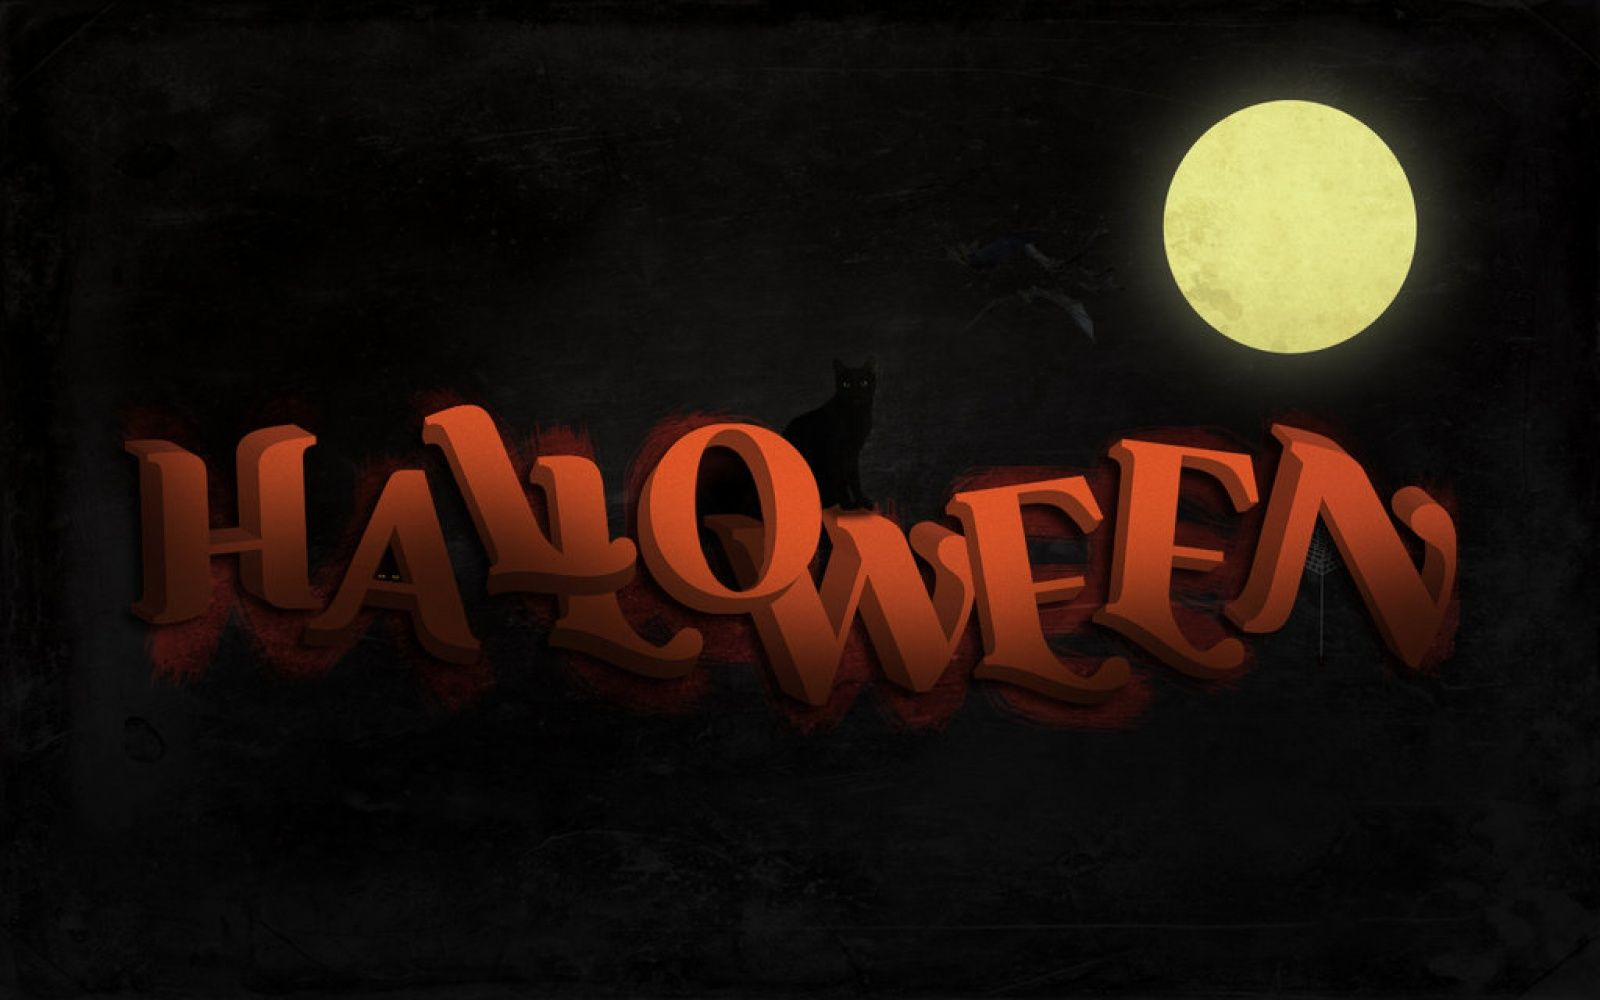 Computer Happy Halloween Wallpapers, Desktop Backgrounds Id